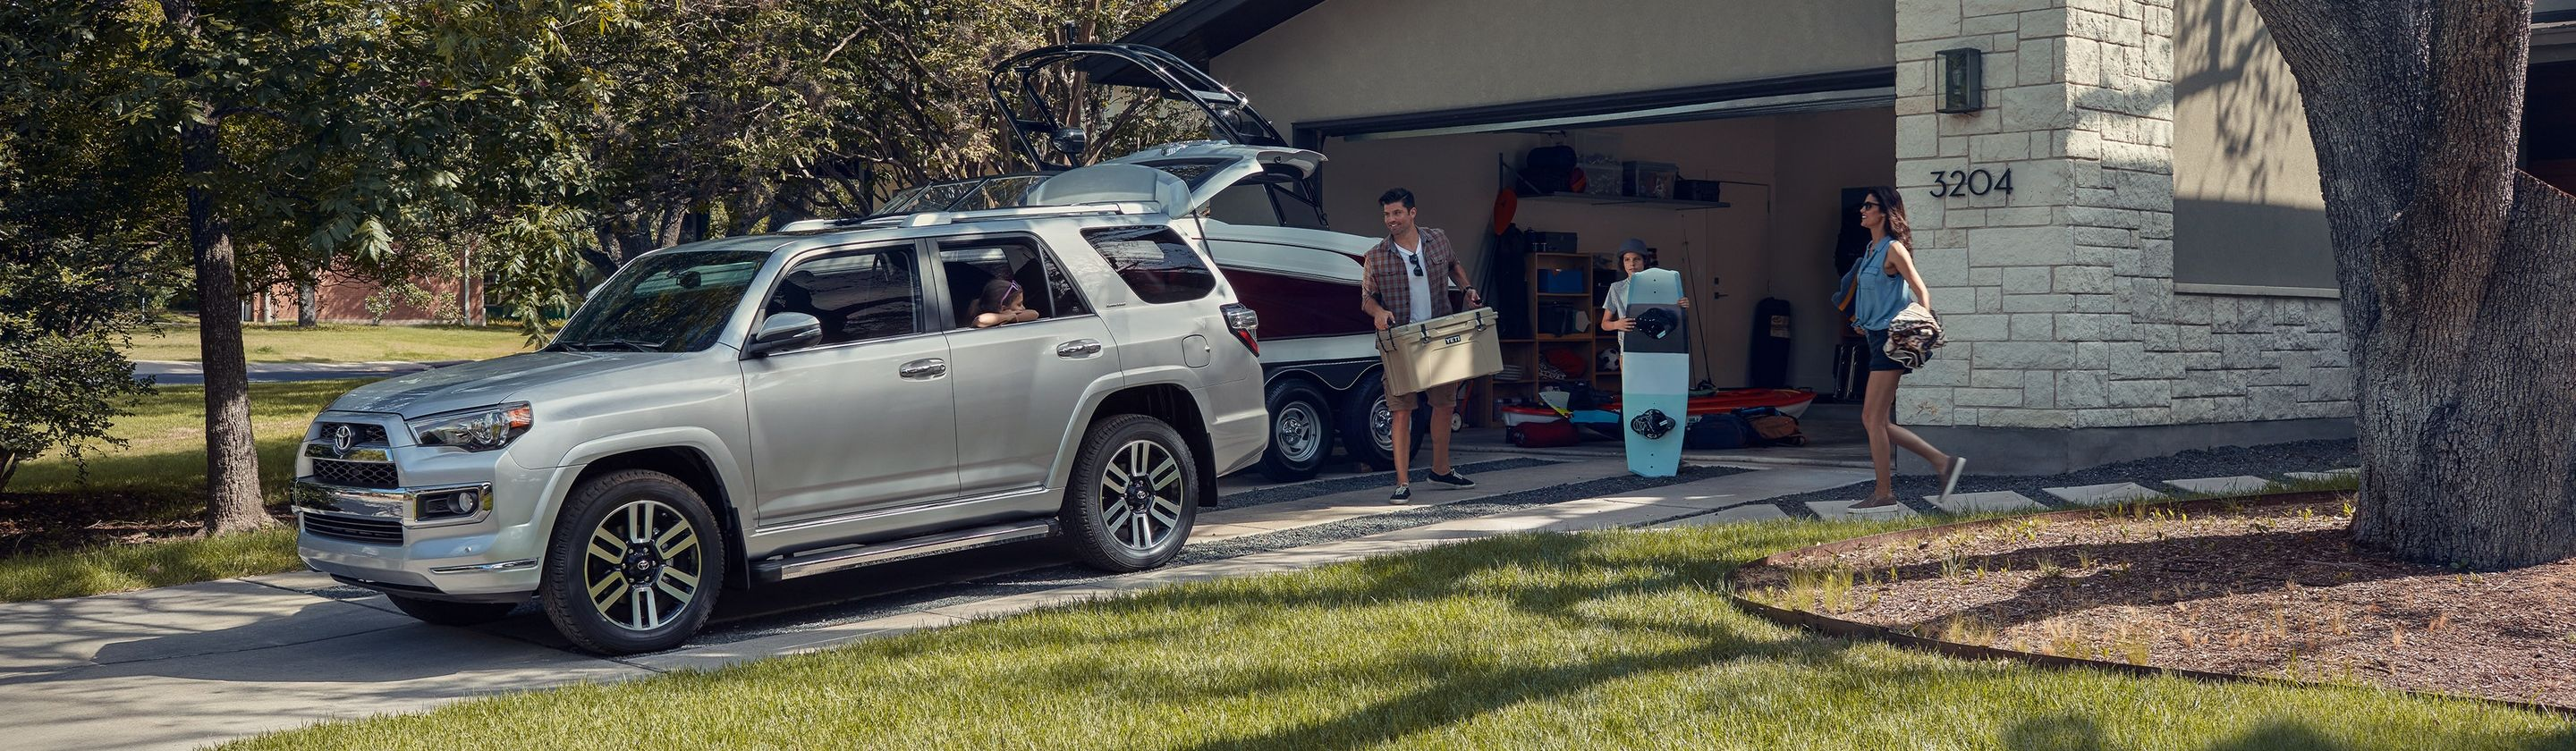 2019 Toyota 4Runner for Sale near Jackson, MI